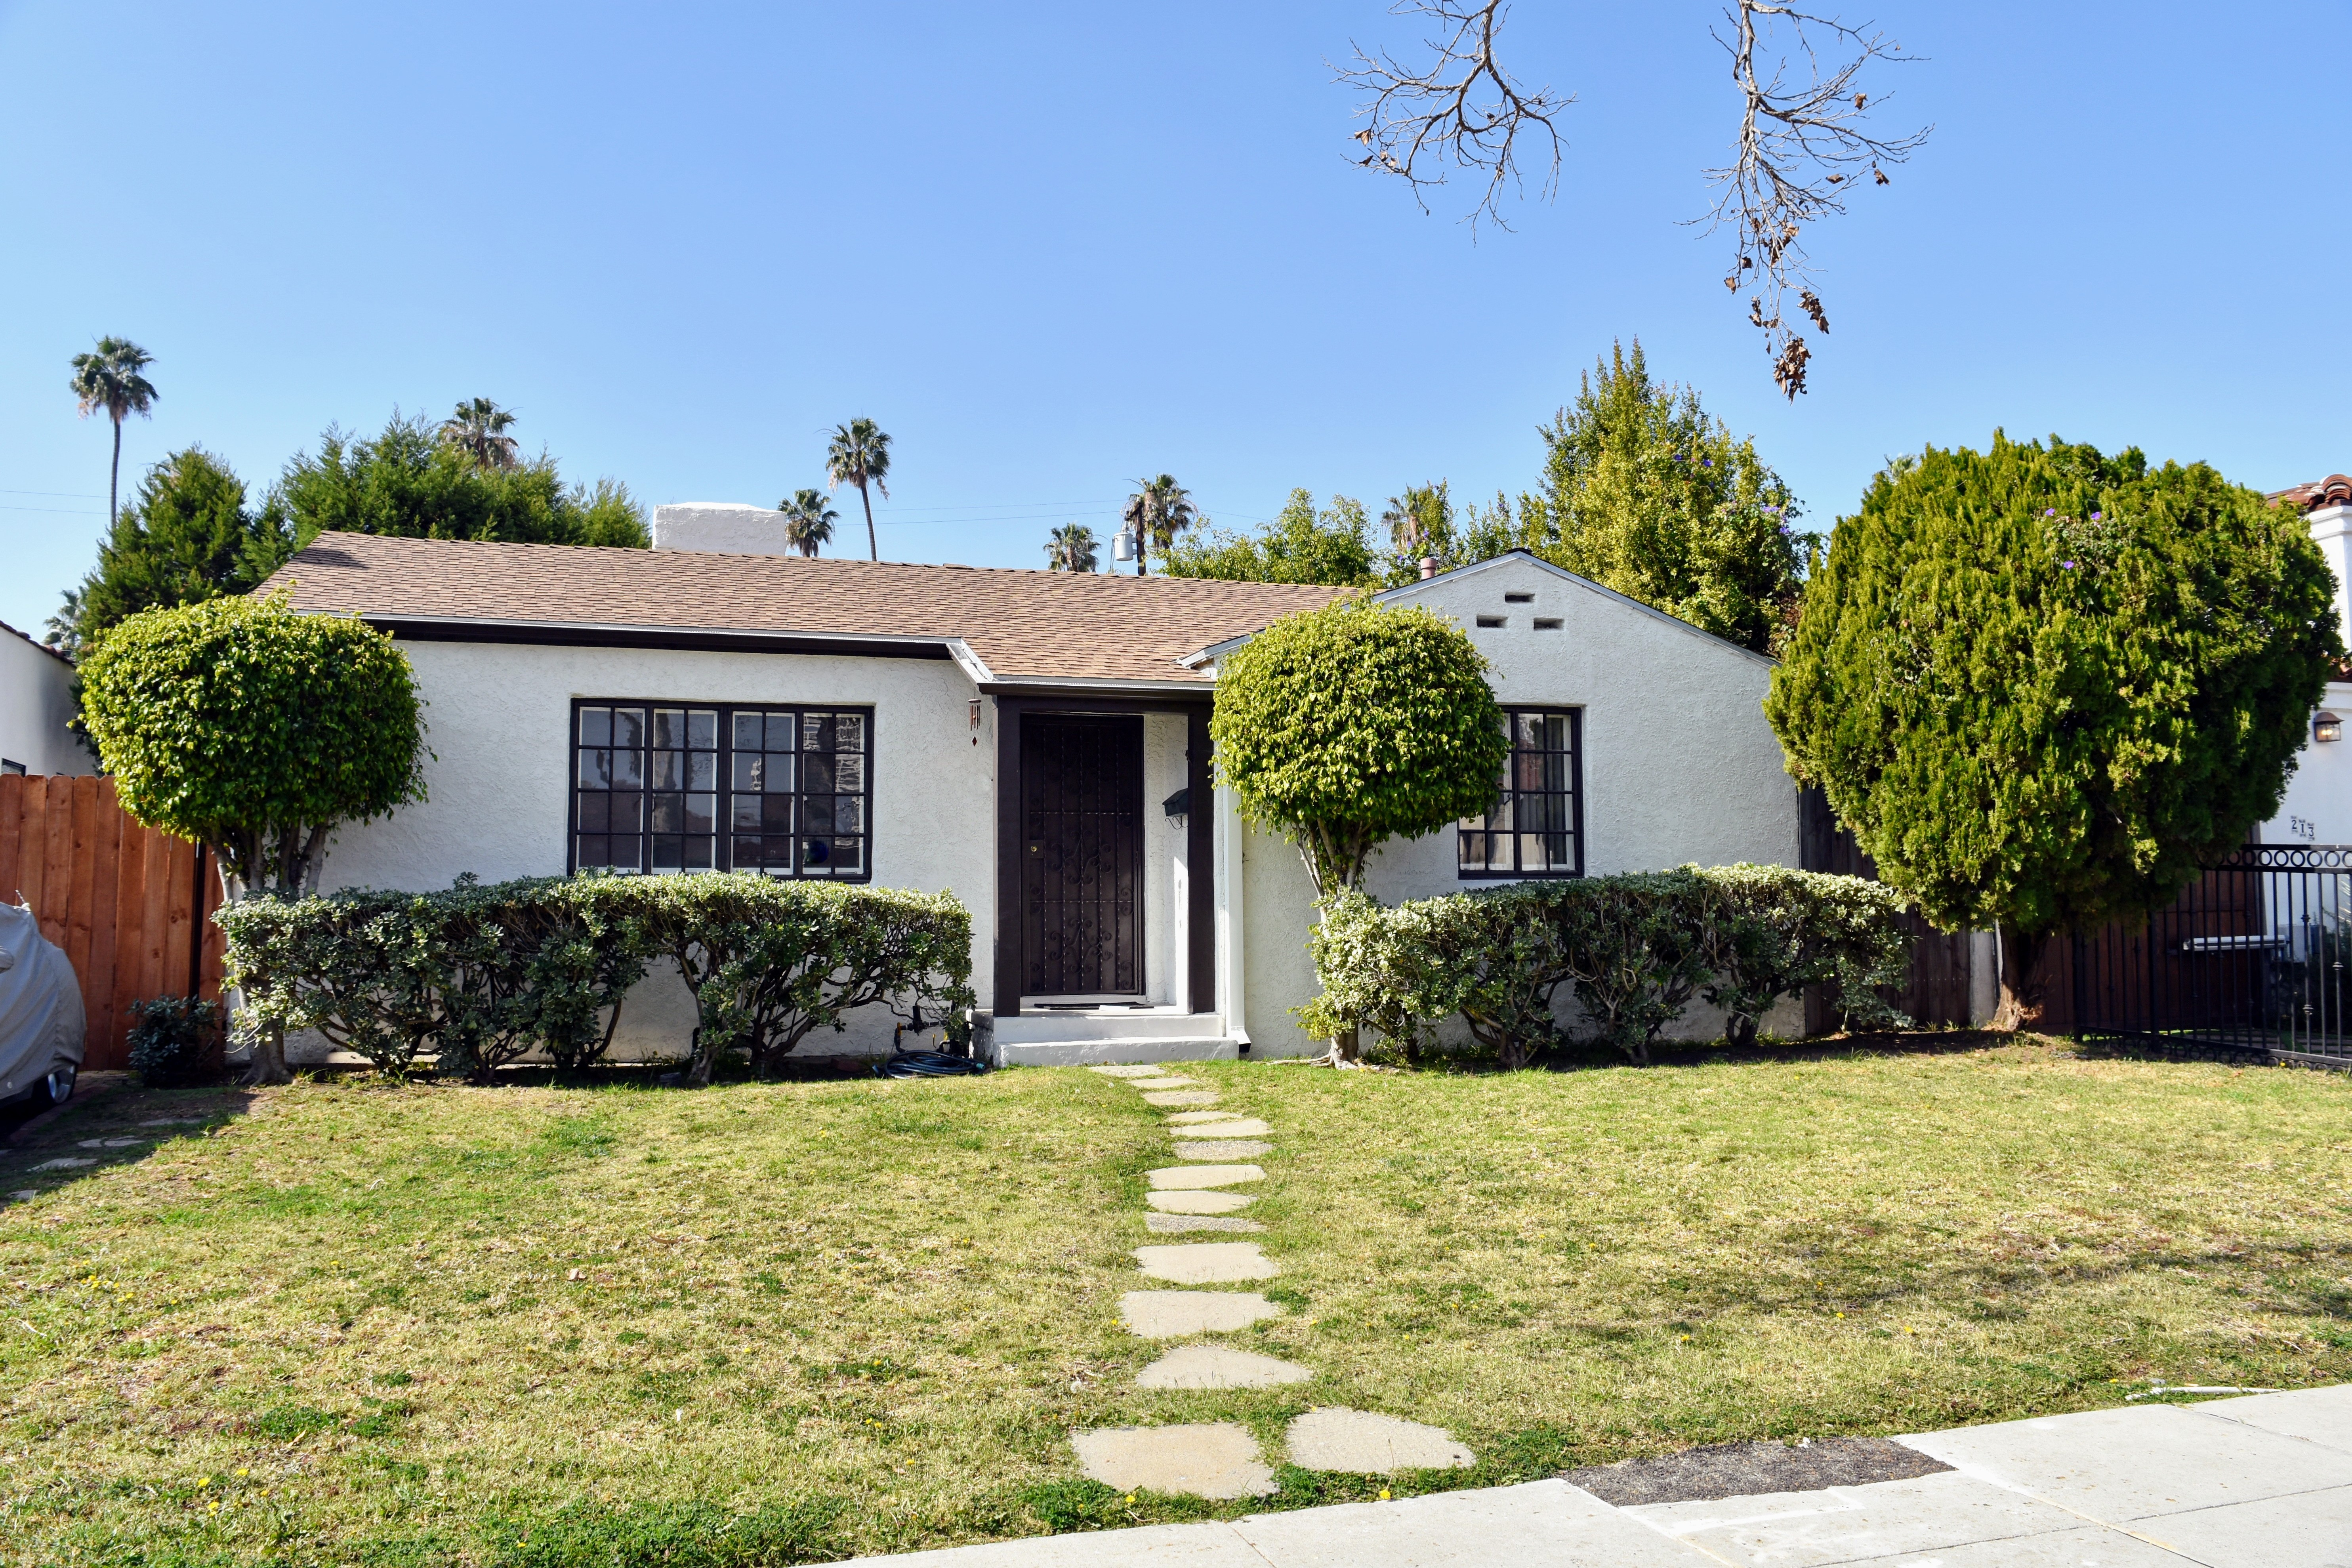 75 percent of LA residents can't afford to buy in LA